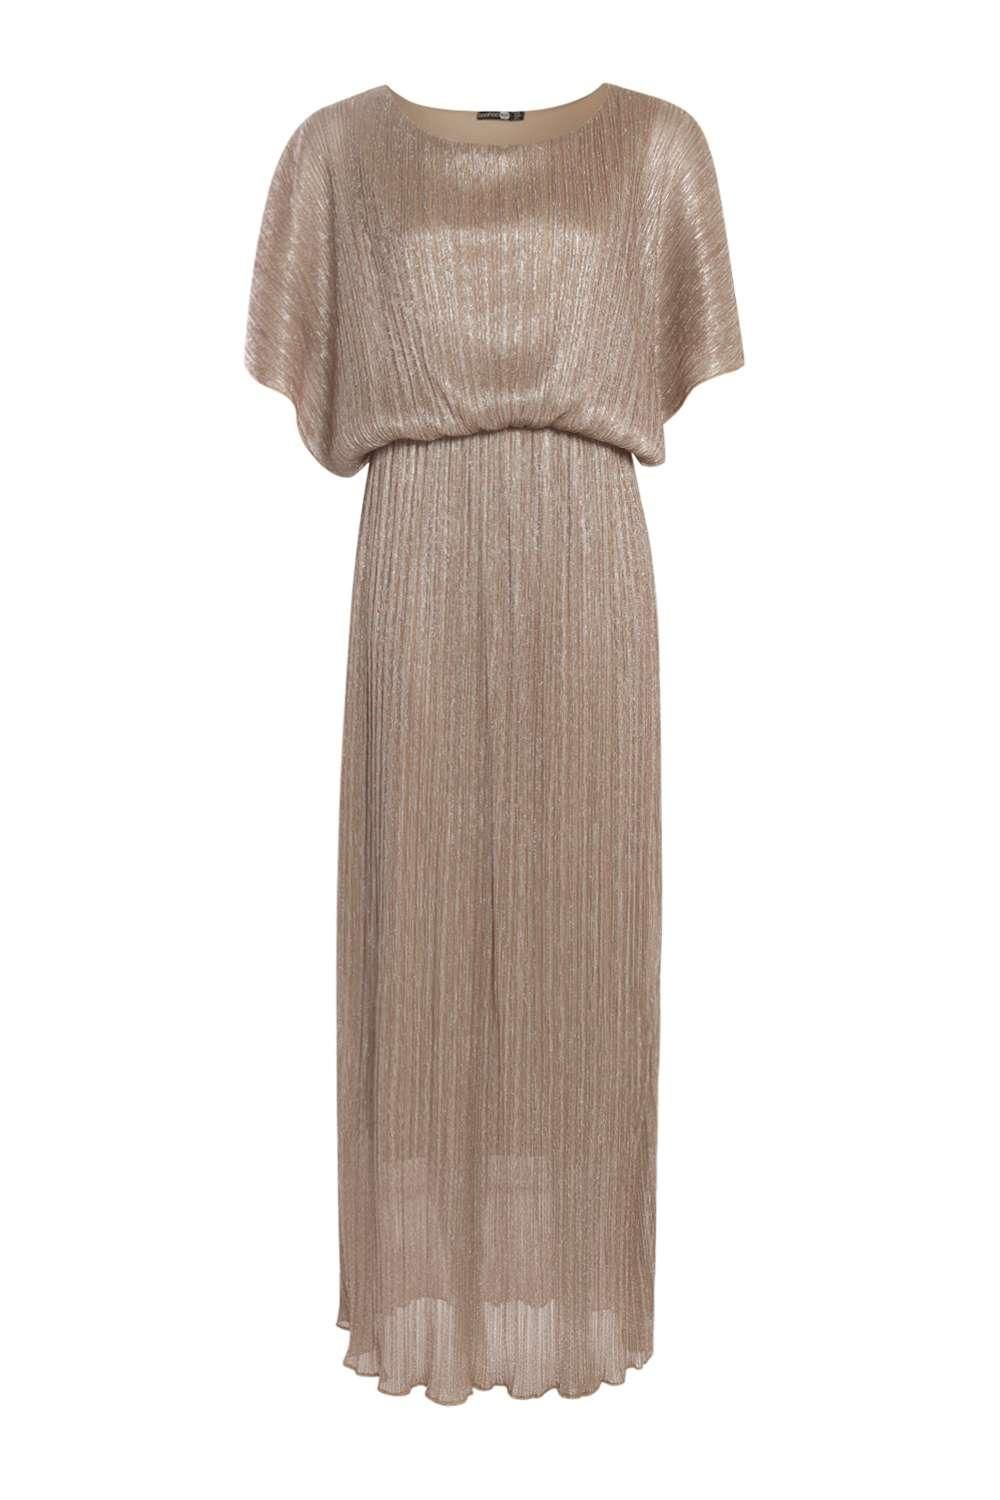 788992fdc8 Millie Metallic Pleat Maxi Dress at boohoo.com